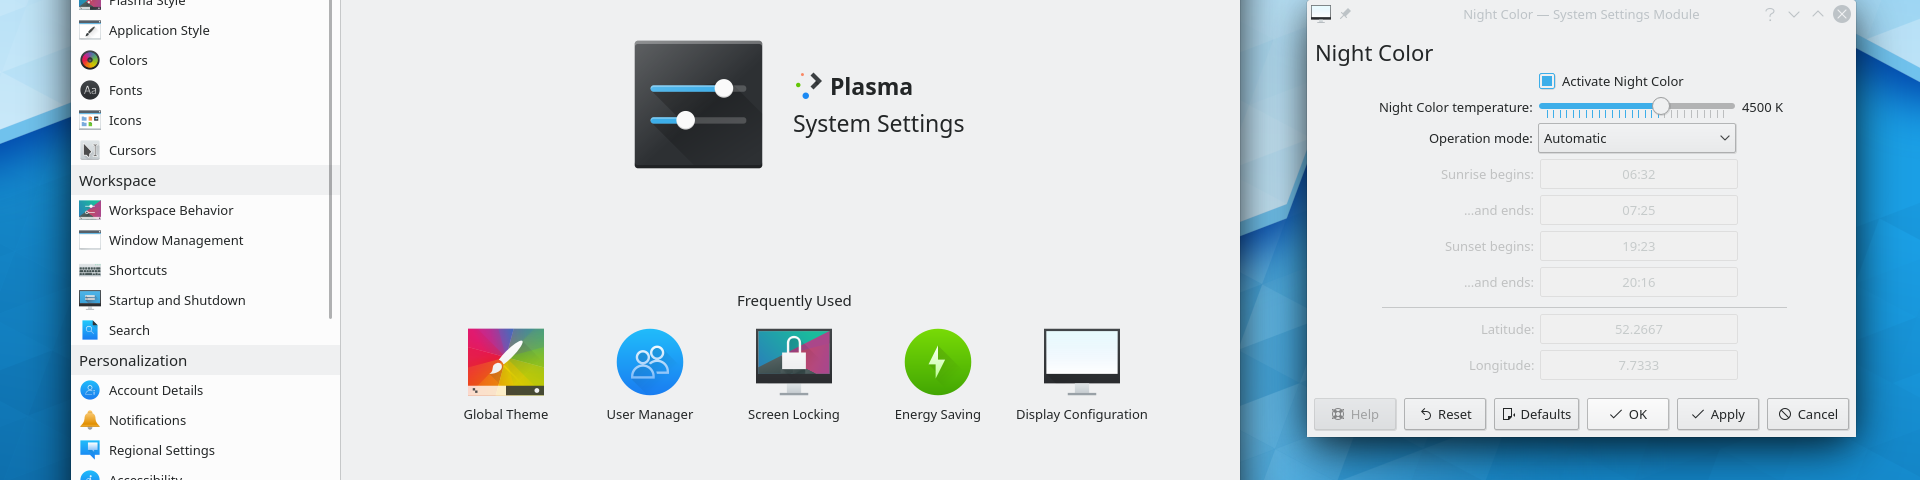 A bugfix update to KDE Plasma 5, versioned 5.17.3